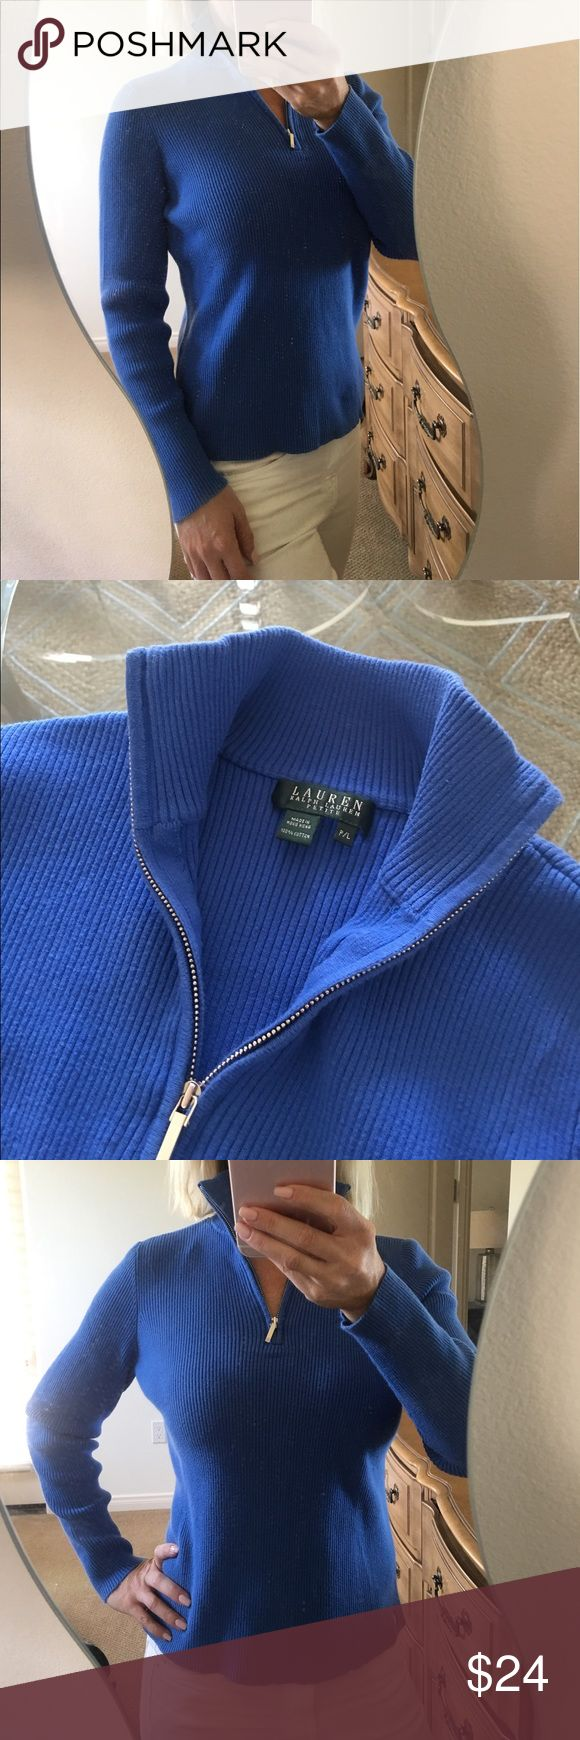 ✨Ralph Lauren Cotton Half Zip Up Turtleneck Top✨ Cute and classic blue ribbed Ralph Lauren Petite ribbed turtleneck! Half zip with silver metal hardware, mock turtleneck, long sleeved. Cotton material with some stretch to it. Perfect basic! In great condition! ❤️ Ralph Lauren Tops